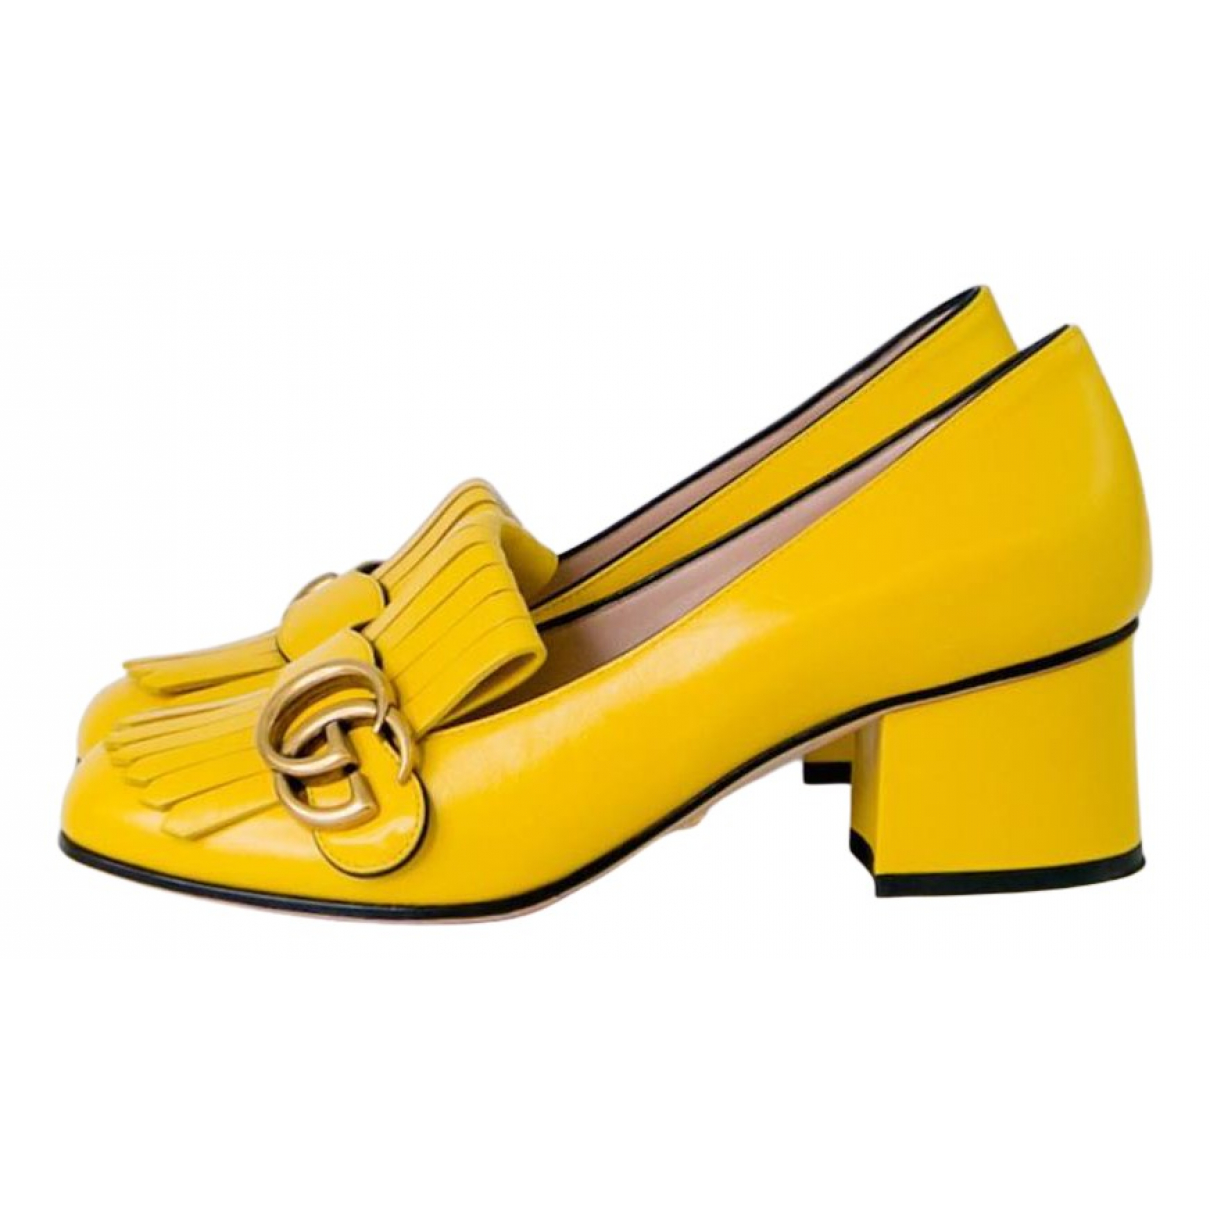 Gucci Marmont Yellow Leather Heels for Women 36 EU